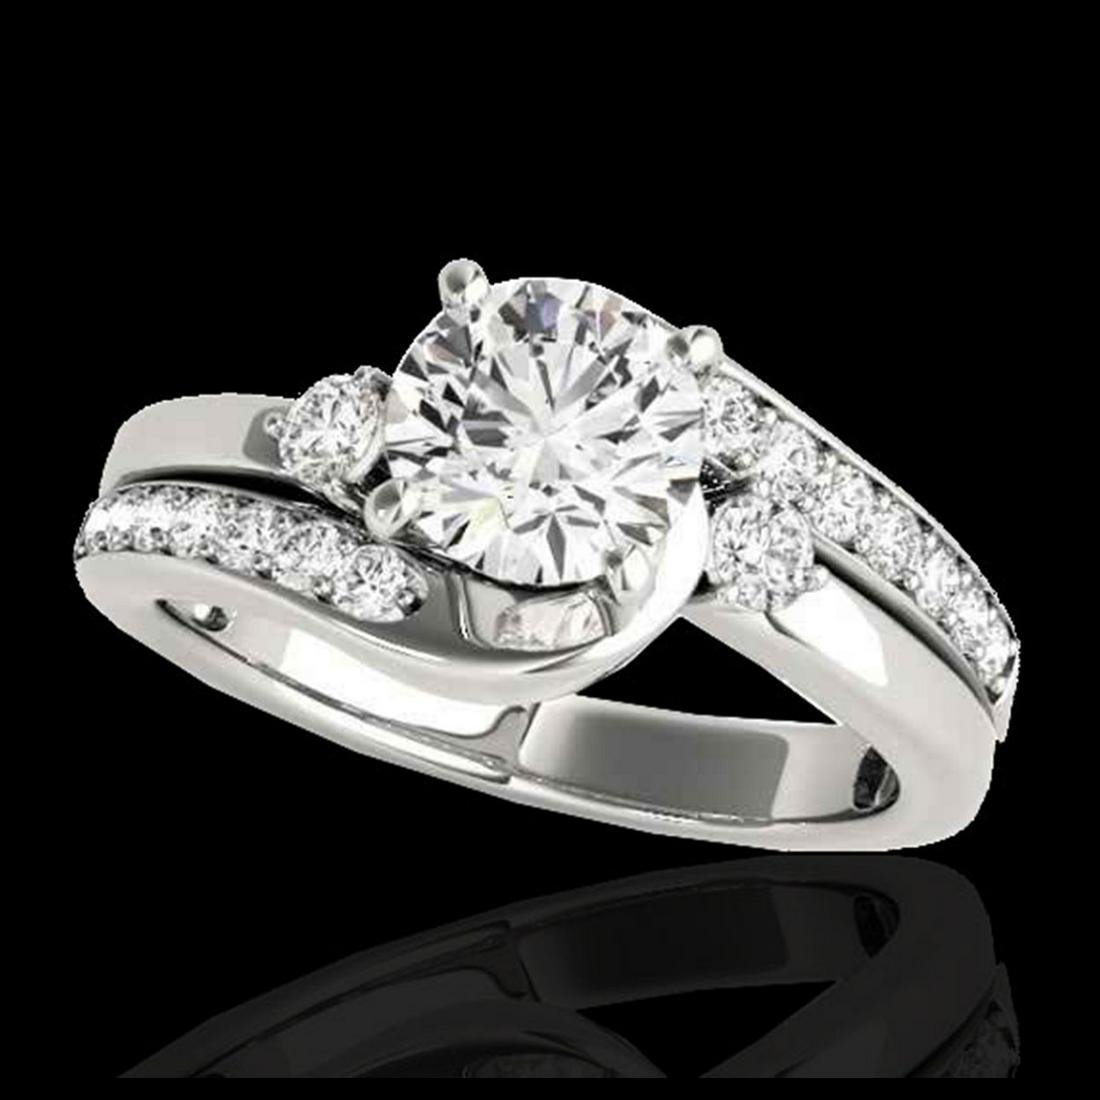 2 ctw H-SI/I Diamond Bypass Solitaire Ring 10K White